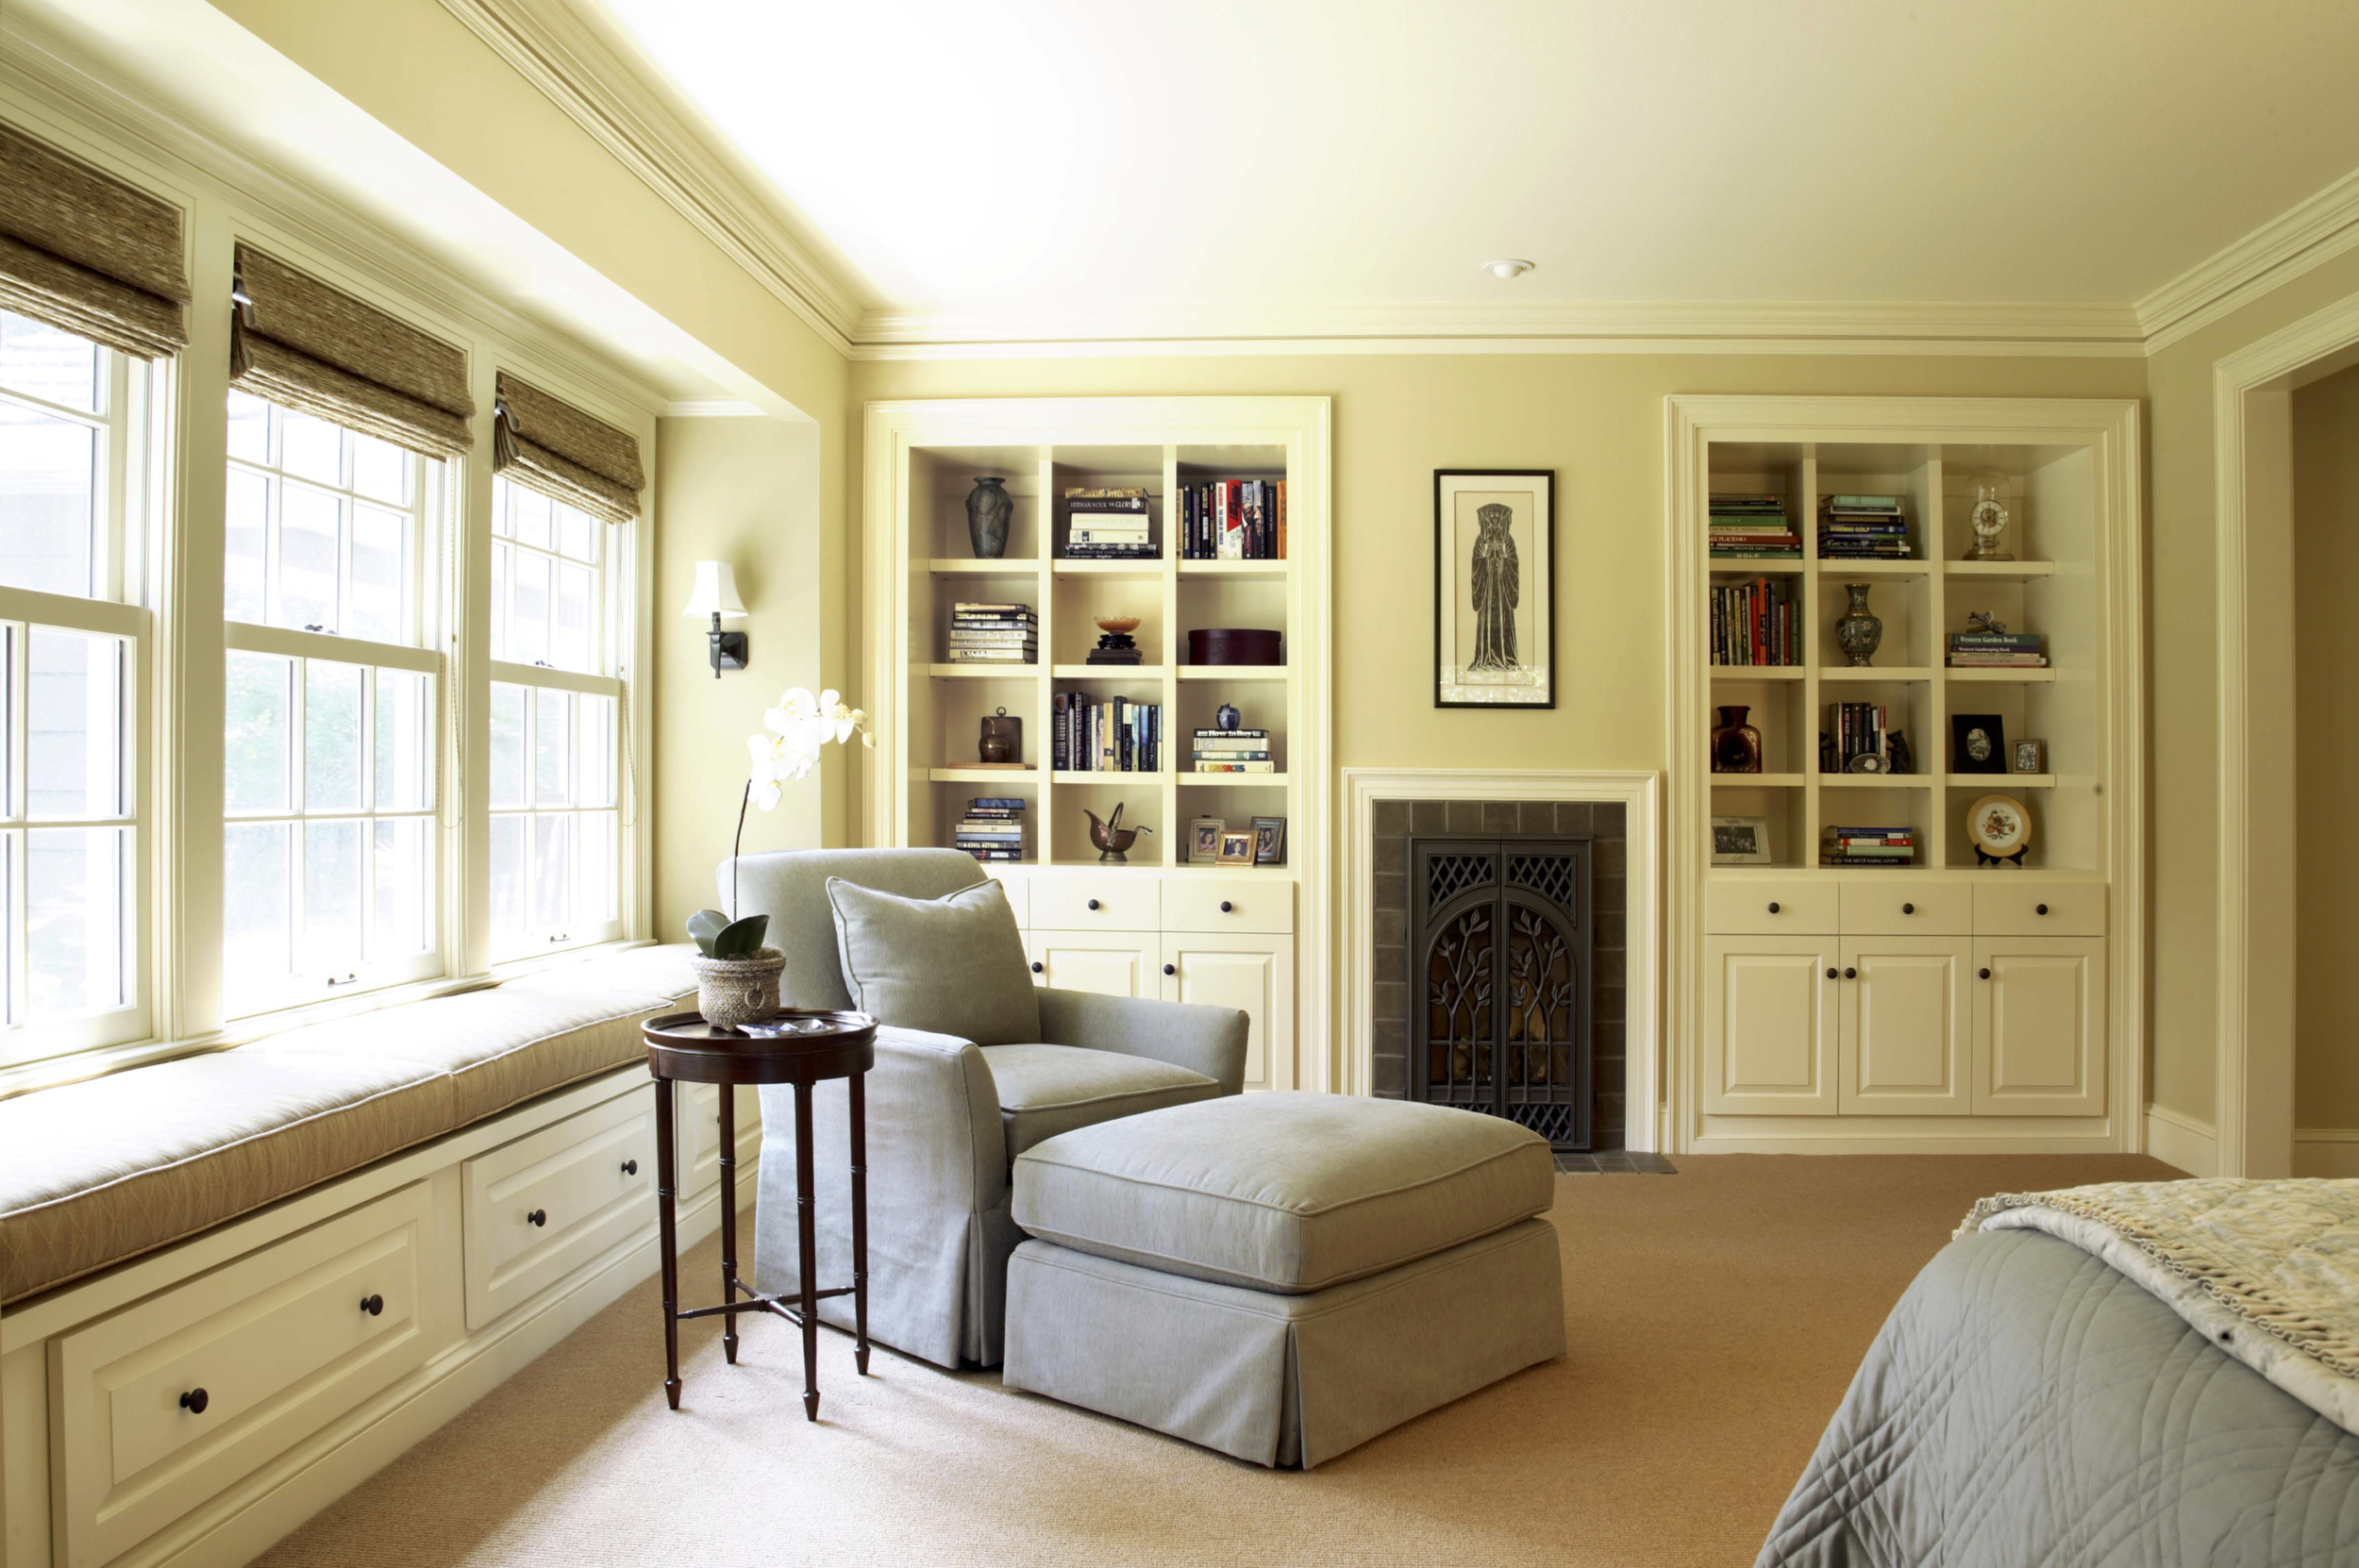 Barkin Bedroom Stickley Photo Graphic.jpg